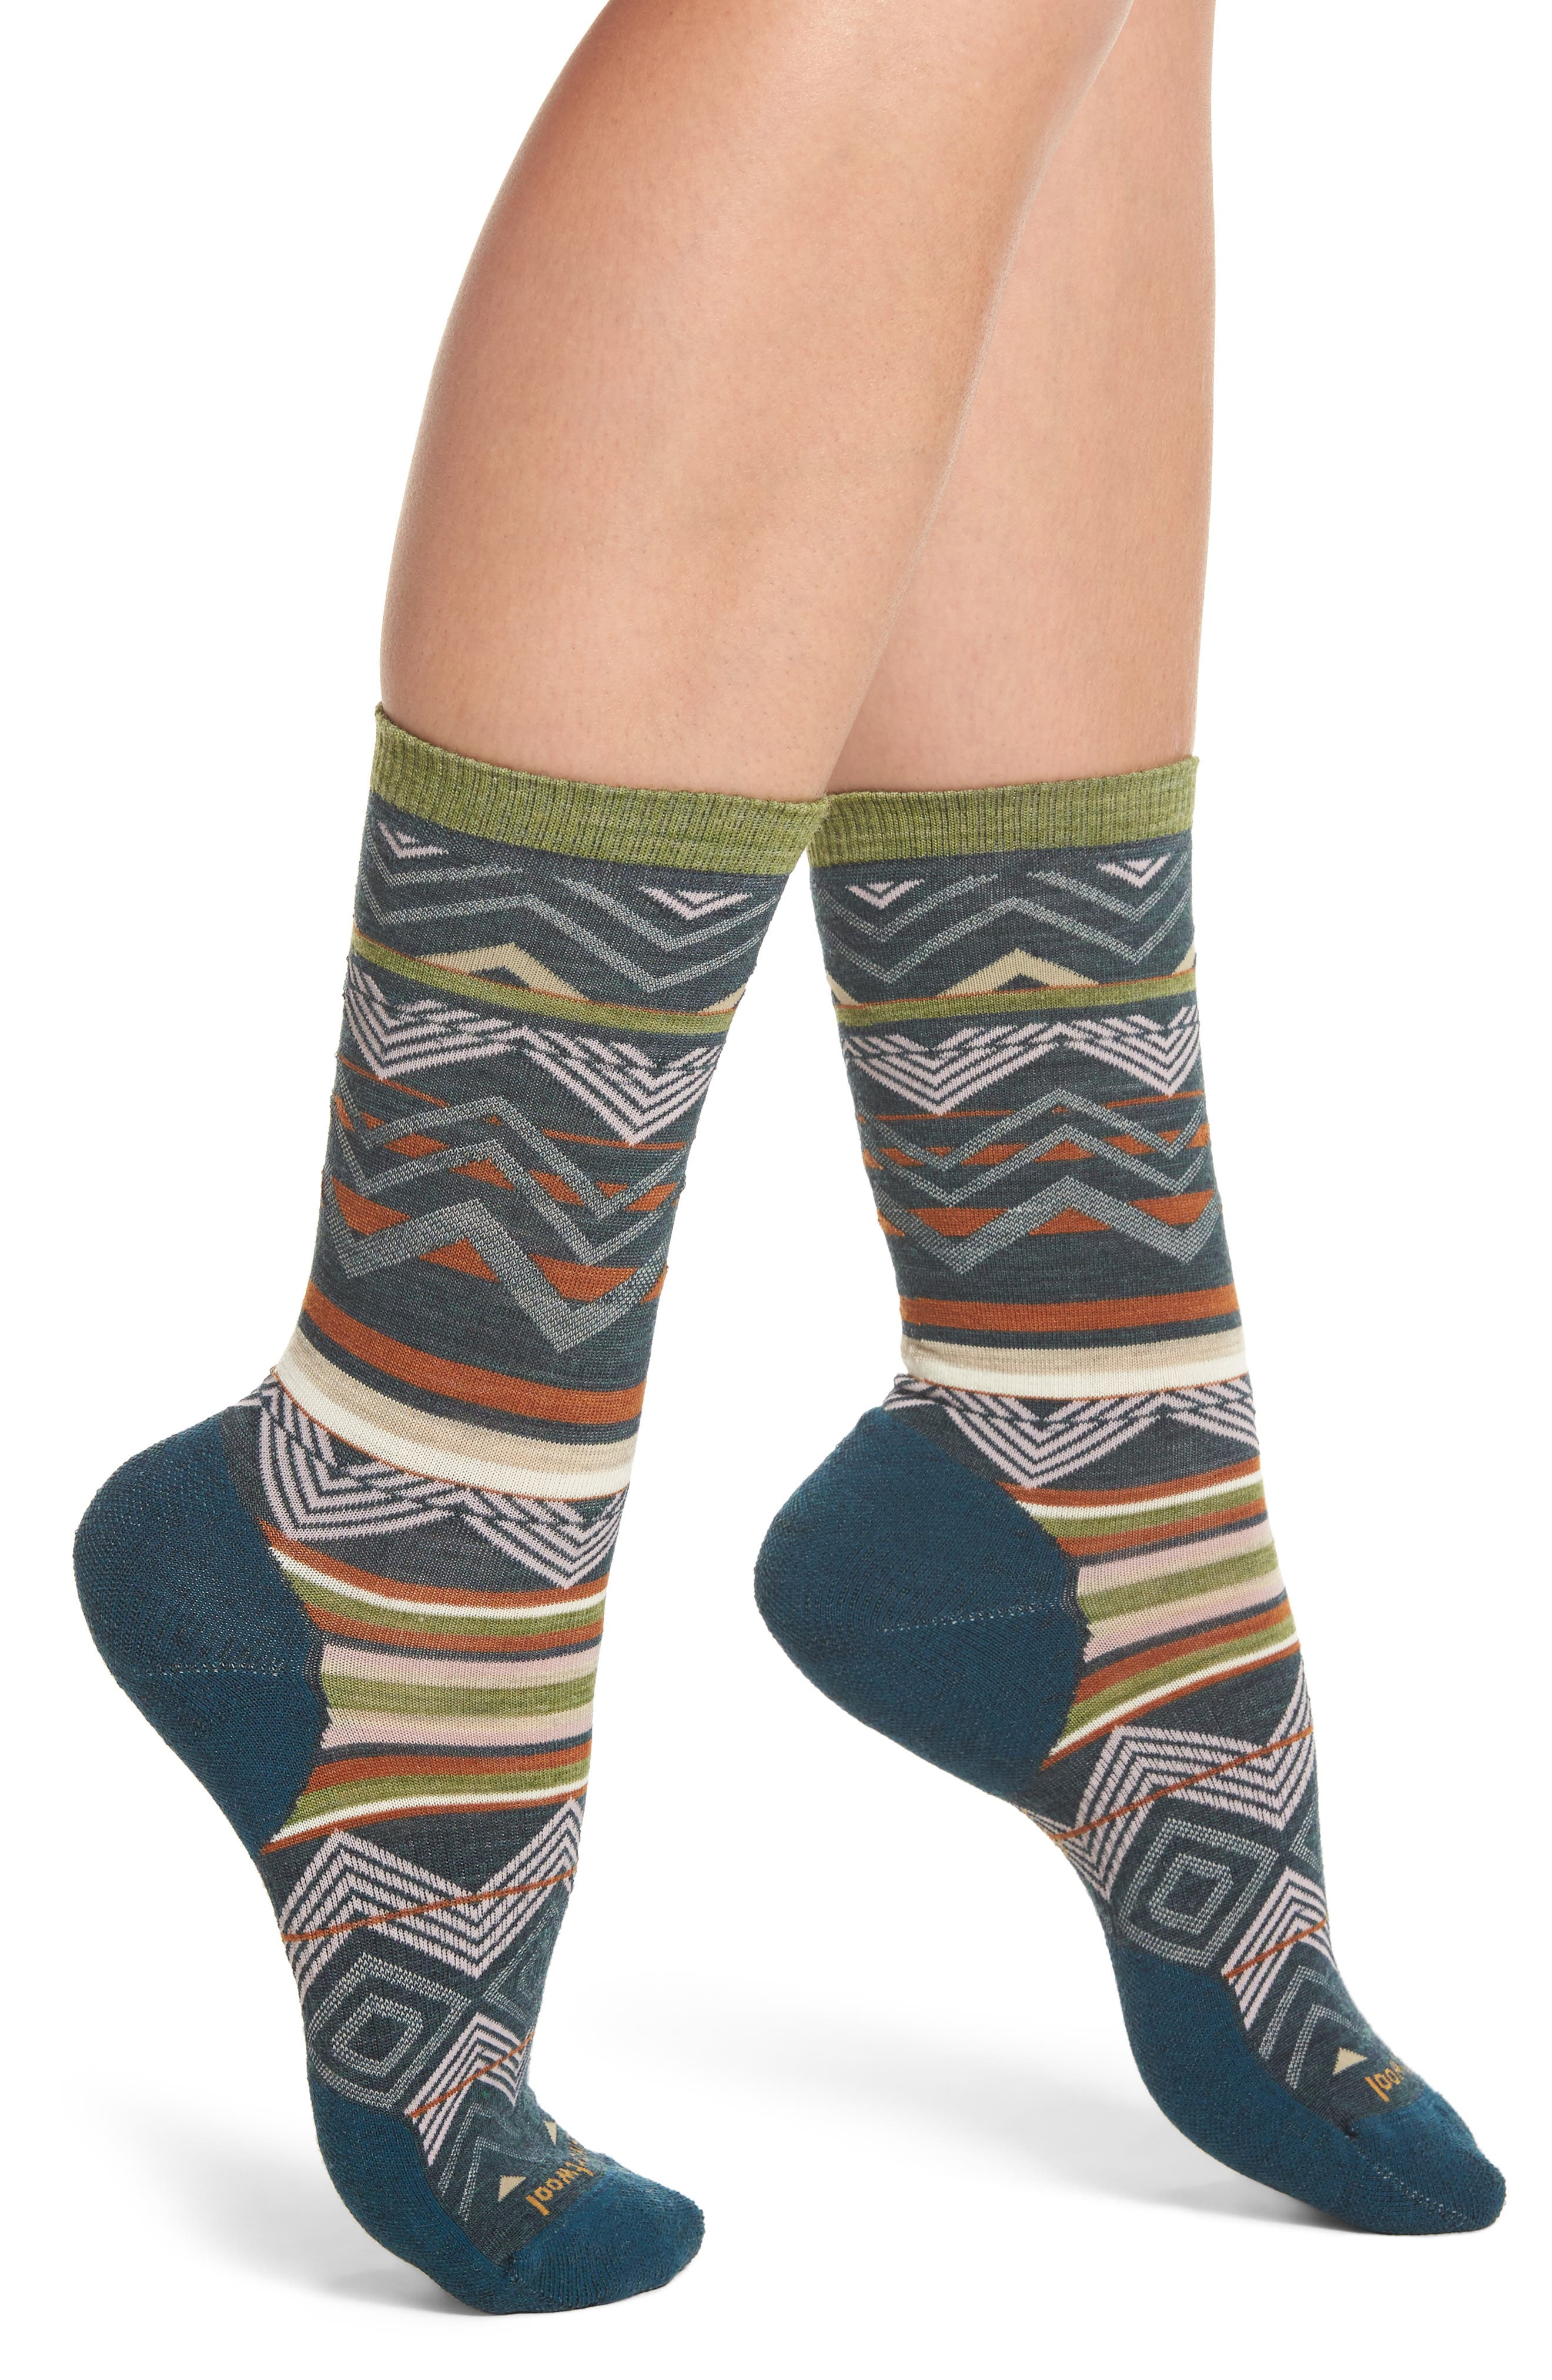 Ripple Creek Crew Socks,                             Main thumbnail 1, color,                             Lochness Heather